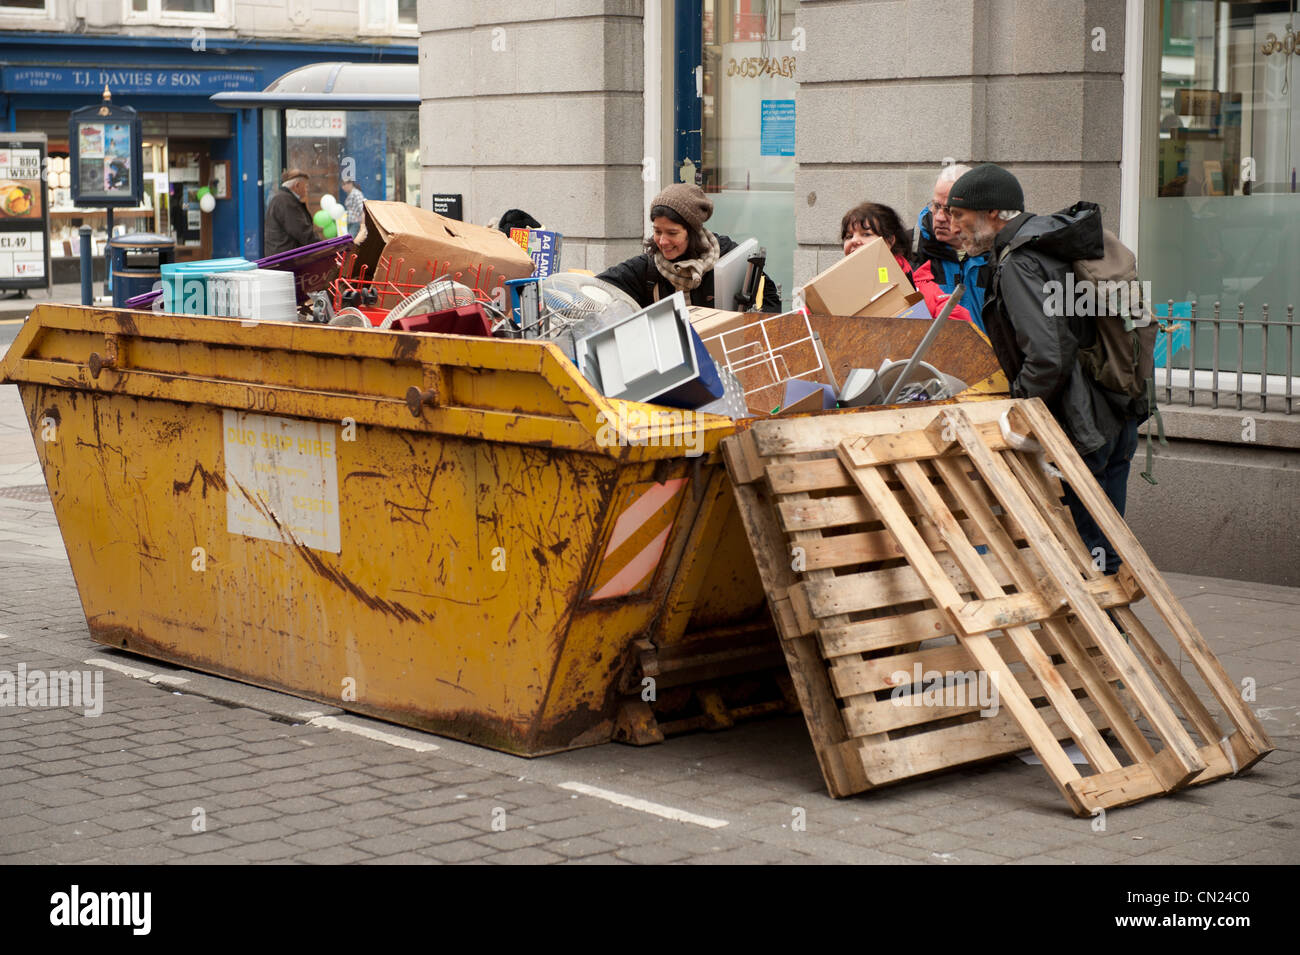 Skip raiding: People scavenging in a skip in the street for items thrown out by a shop, UK - Stock Image